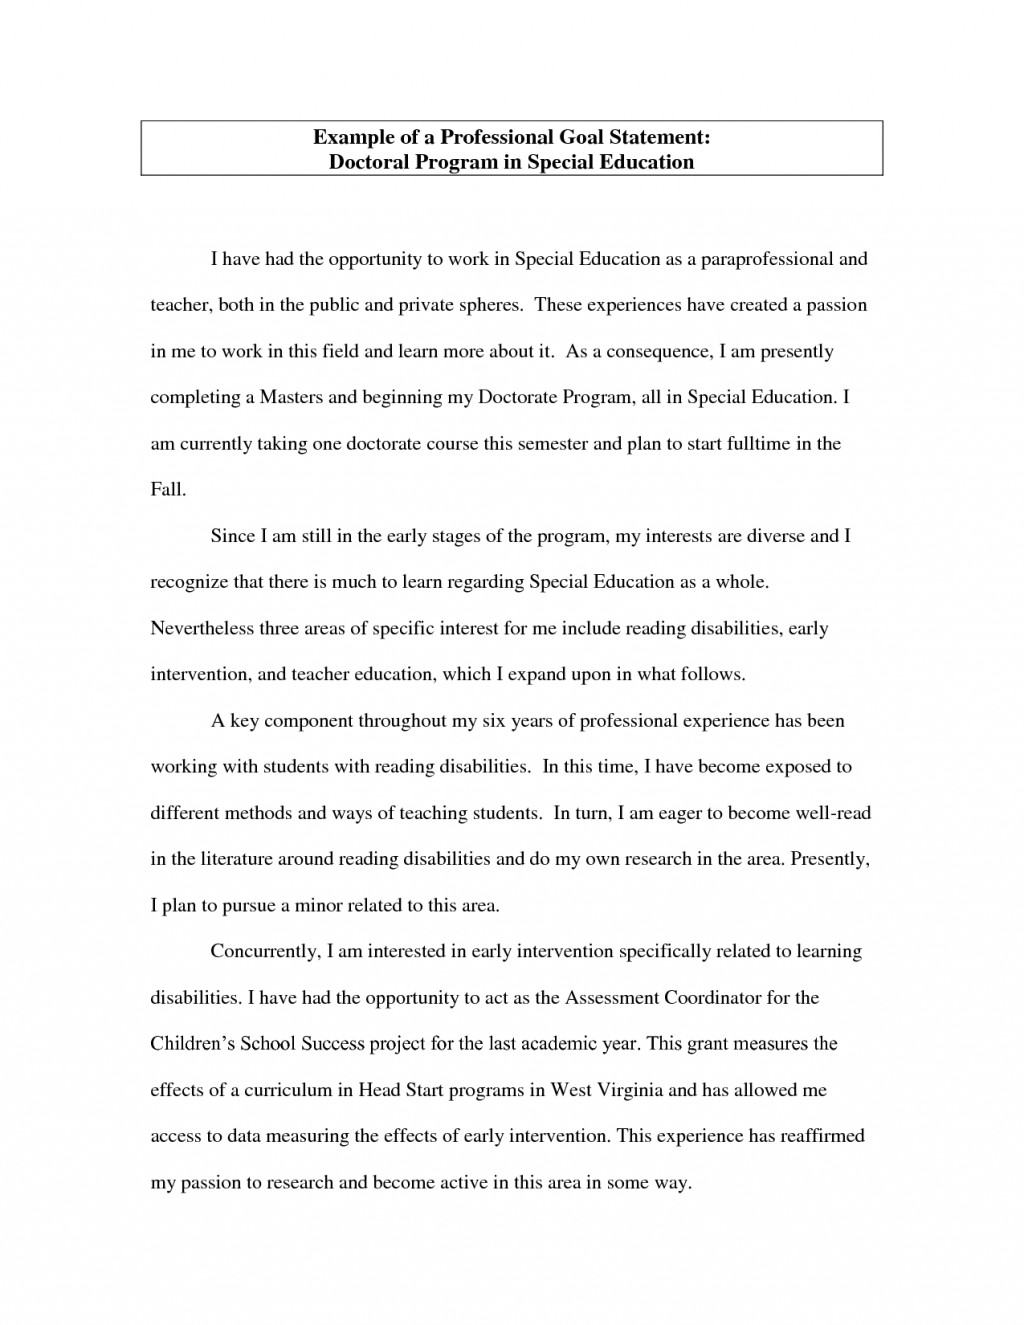 011 Career Goal Statement Zdxttkpg Purpose Of Life Essay Wondrous Conclusion How To Have A Driven Can I Large